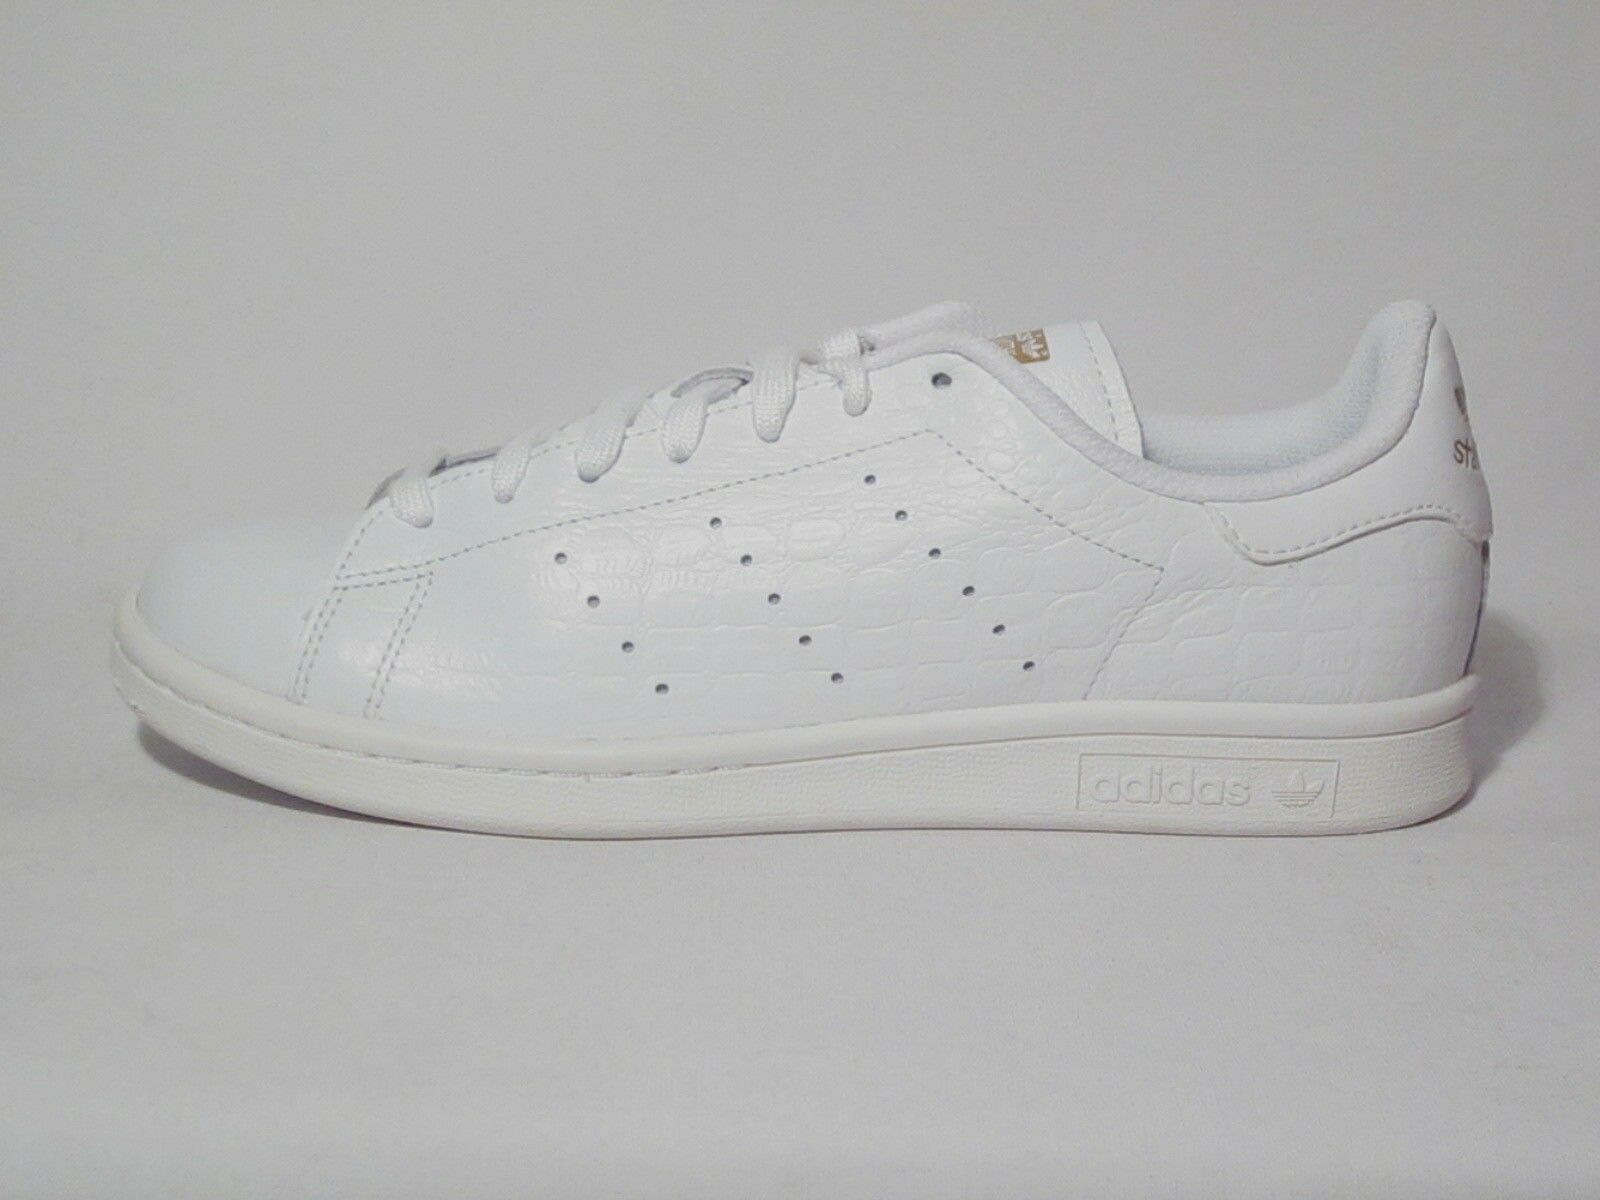 ORIGINAL ADIDAS STAN SMITH  WHITE  TRAINERS SNEAKERS AQ2727